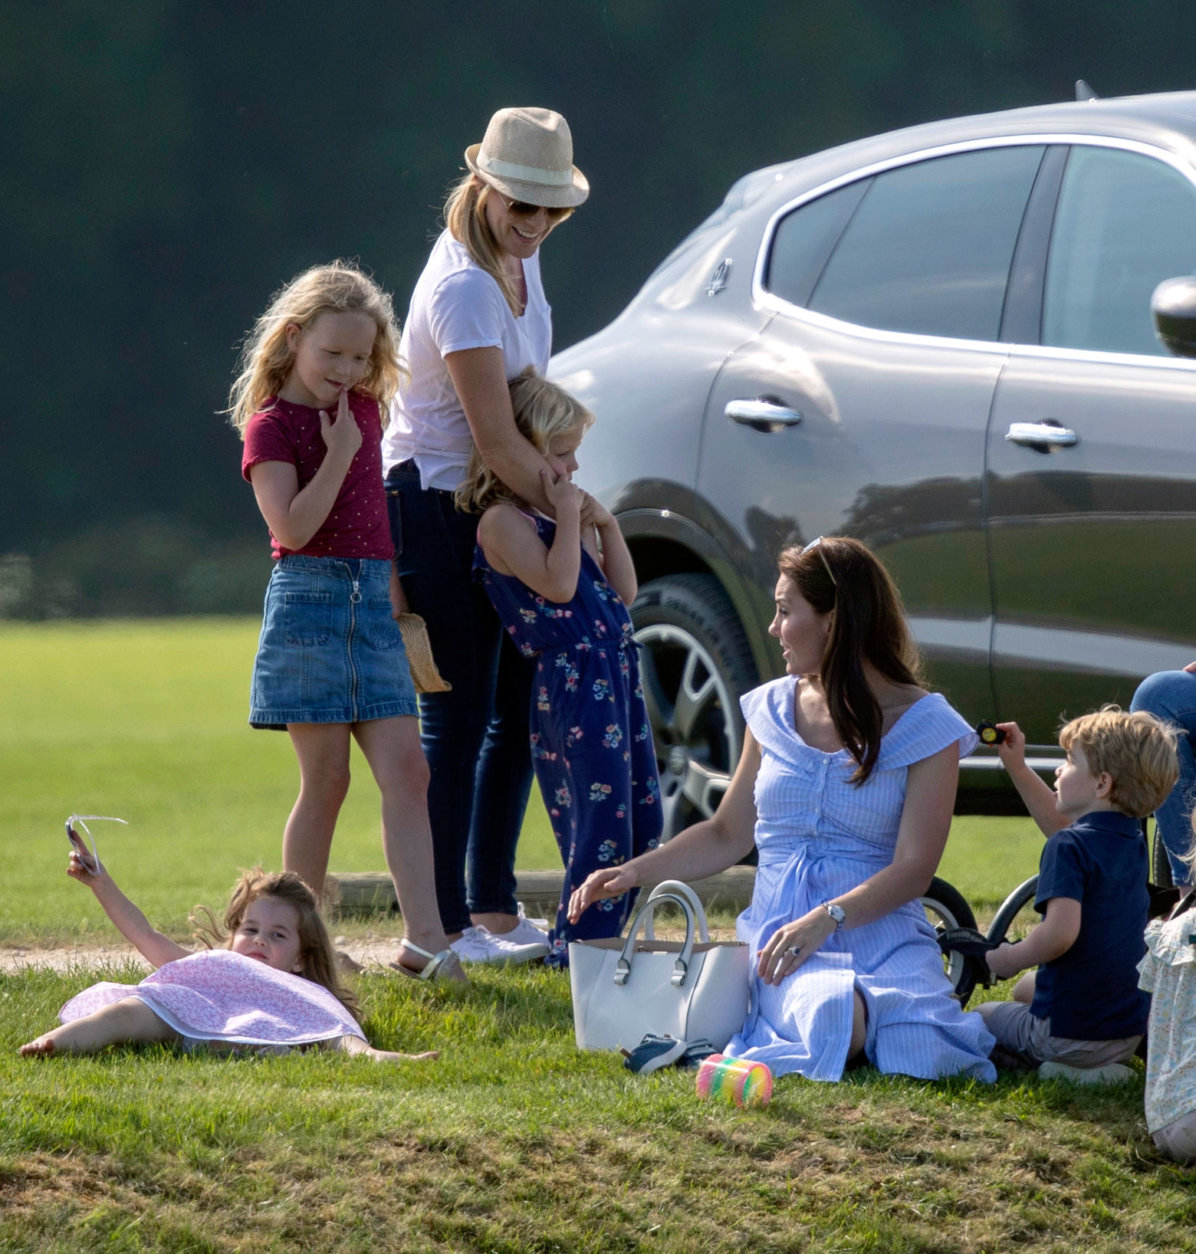 Britain's Kate, the Duchess of Cambridge, second right, sits with Prince George and Princess Charlotte as she talks to Autumn Phillips and her children, Savannah and Isla, as they watch Prince William take part in the Maserati Royal Charity Polo Trophy at the Beaufort Polo Club, in Tetbury, England, Sunday June 10, 2018.